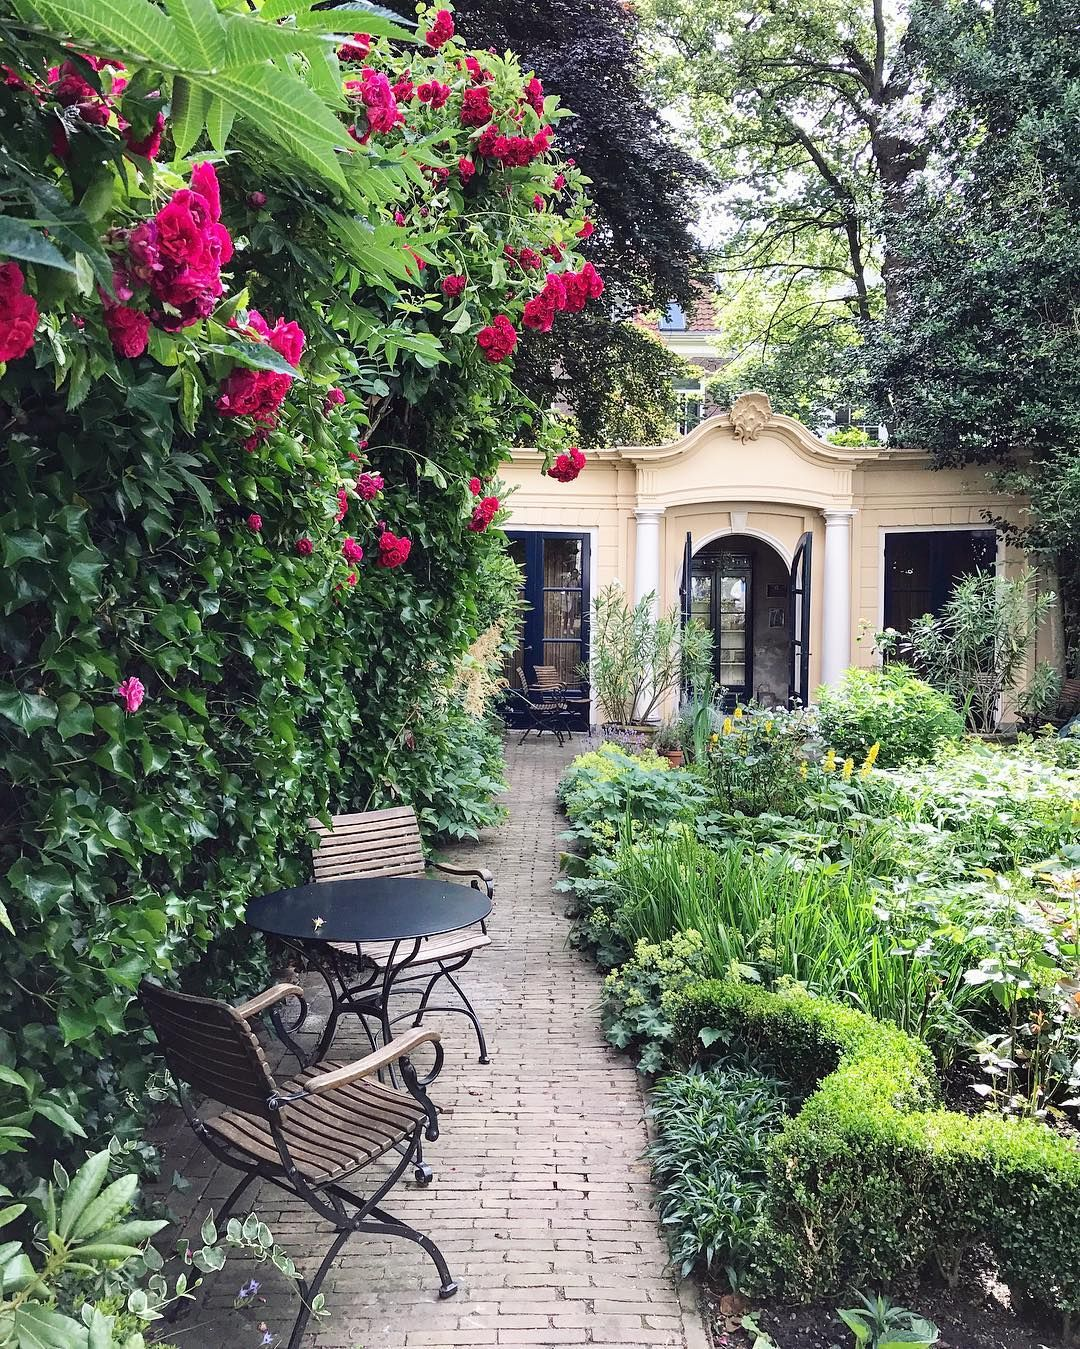 High Quality Amsterdam Garden. Happy Friday. Today And This Weekend Amsterdam Open Garden  Days. Over 30 Mostly Private Amsterdam Gardens Open To The Public.